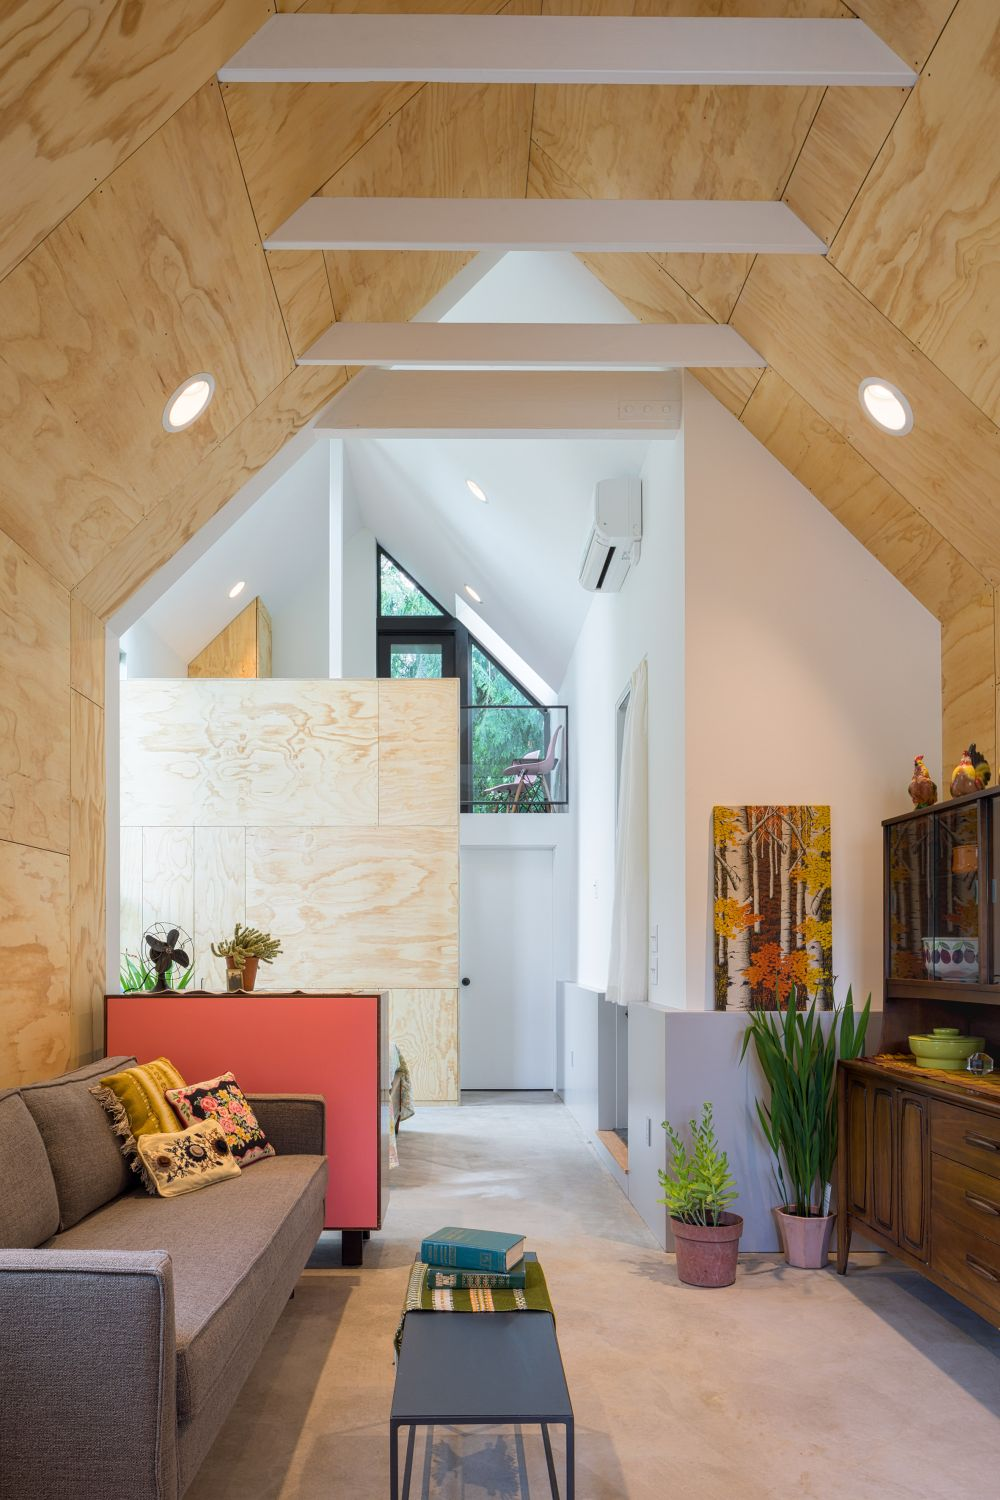 The light plywood surfaces create a warm and inviting ambiance while keeping the decor bright and simple